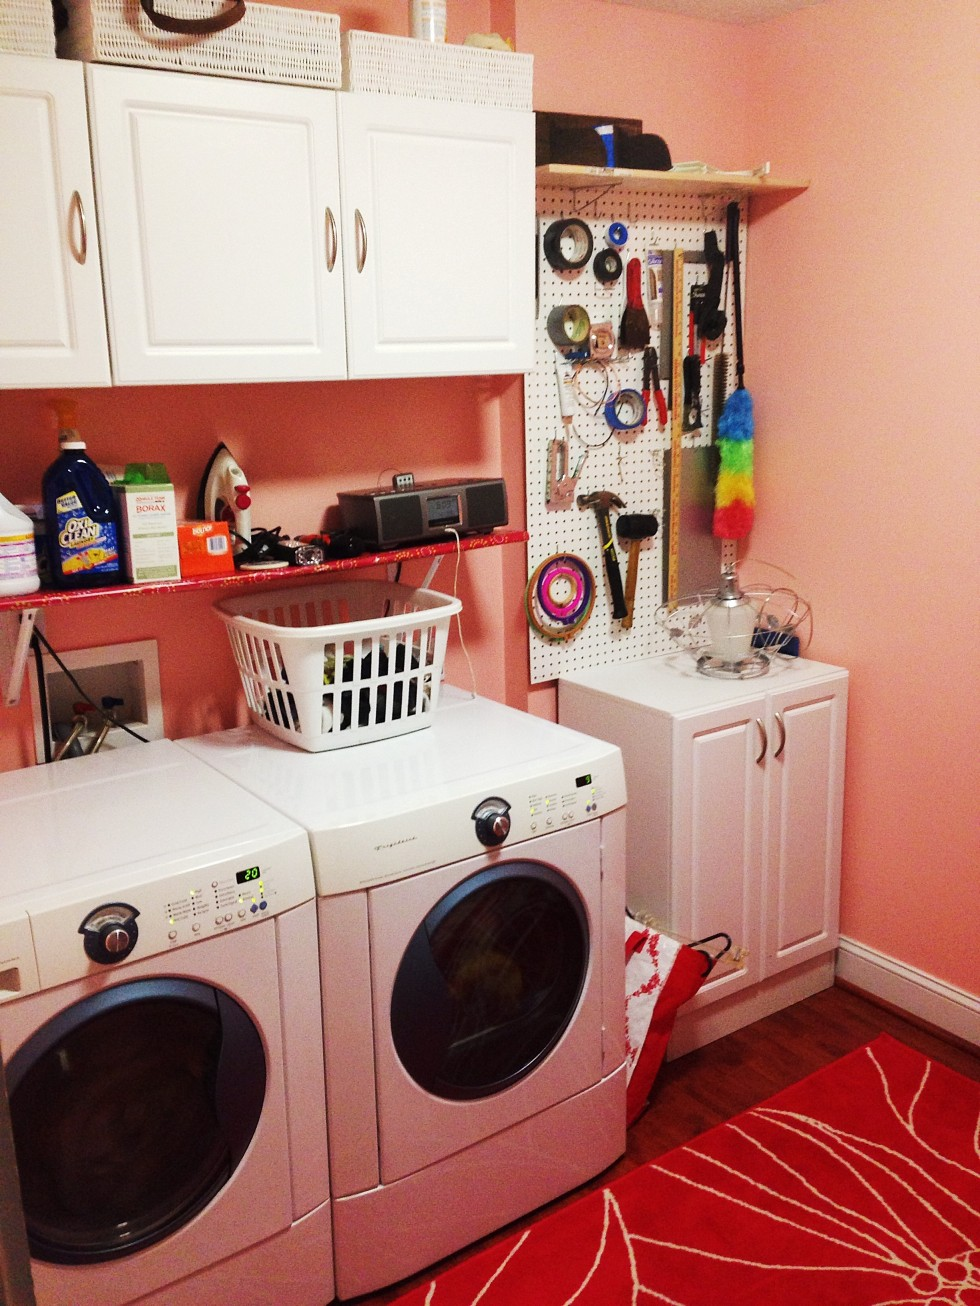 Laundry Room Renovation: Almost There!